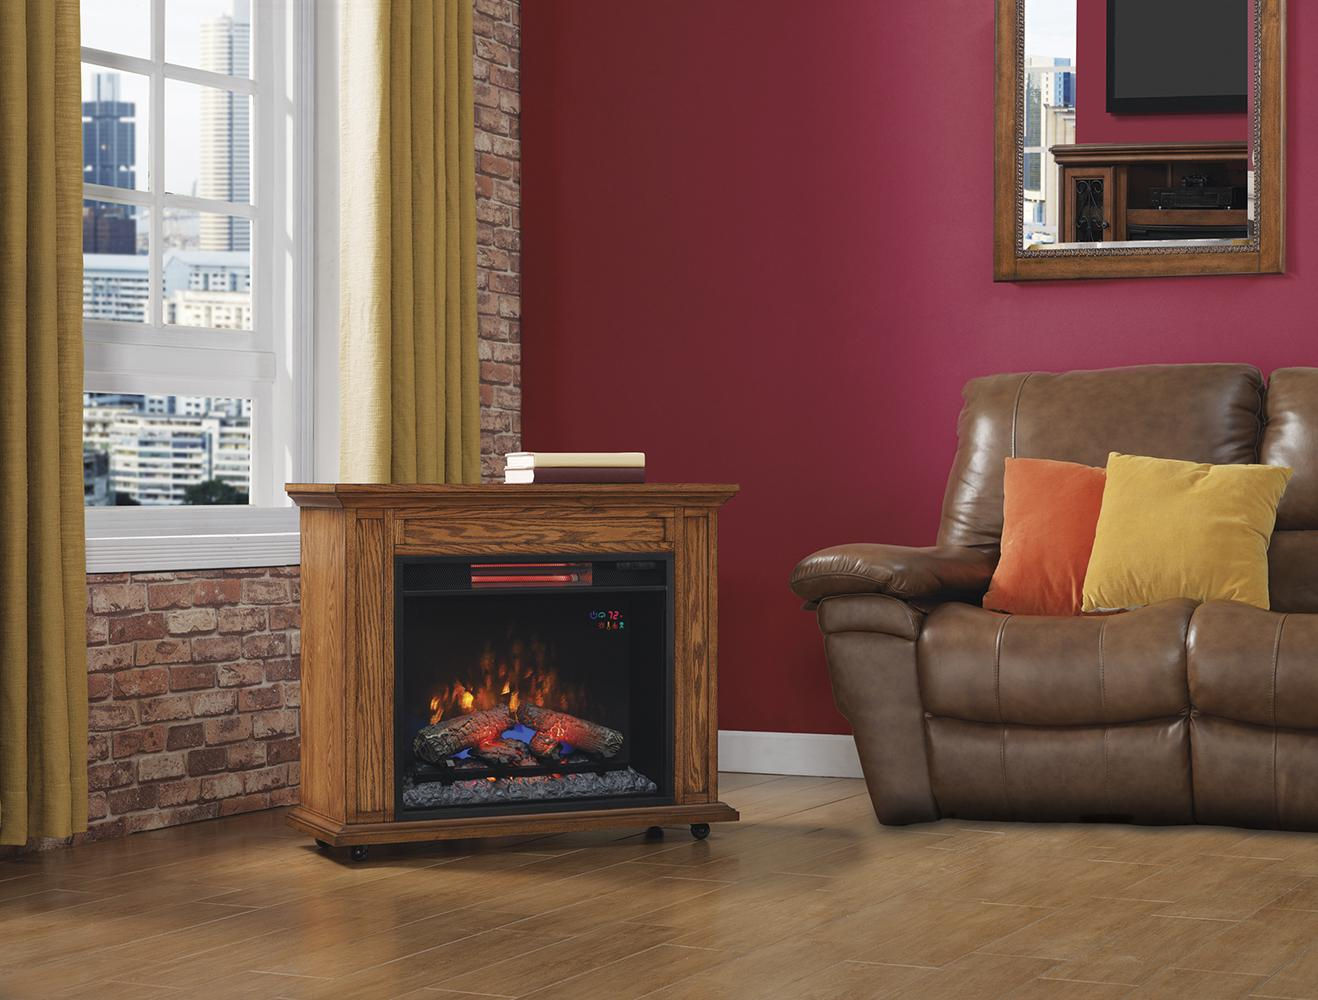 Amazon.com: ClassicFlame 23IRM1500-O107 Rolling Mantel with Infrared Quartz Fireplace